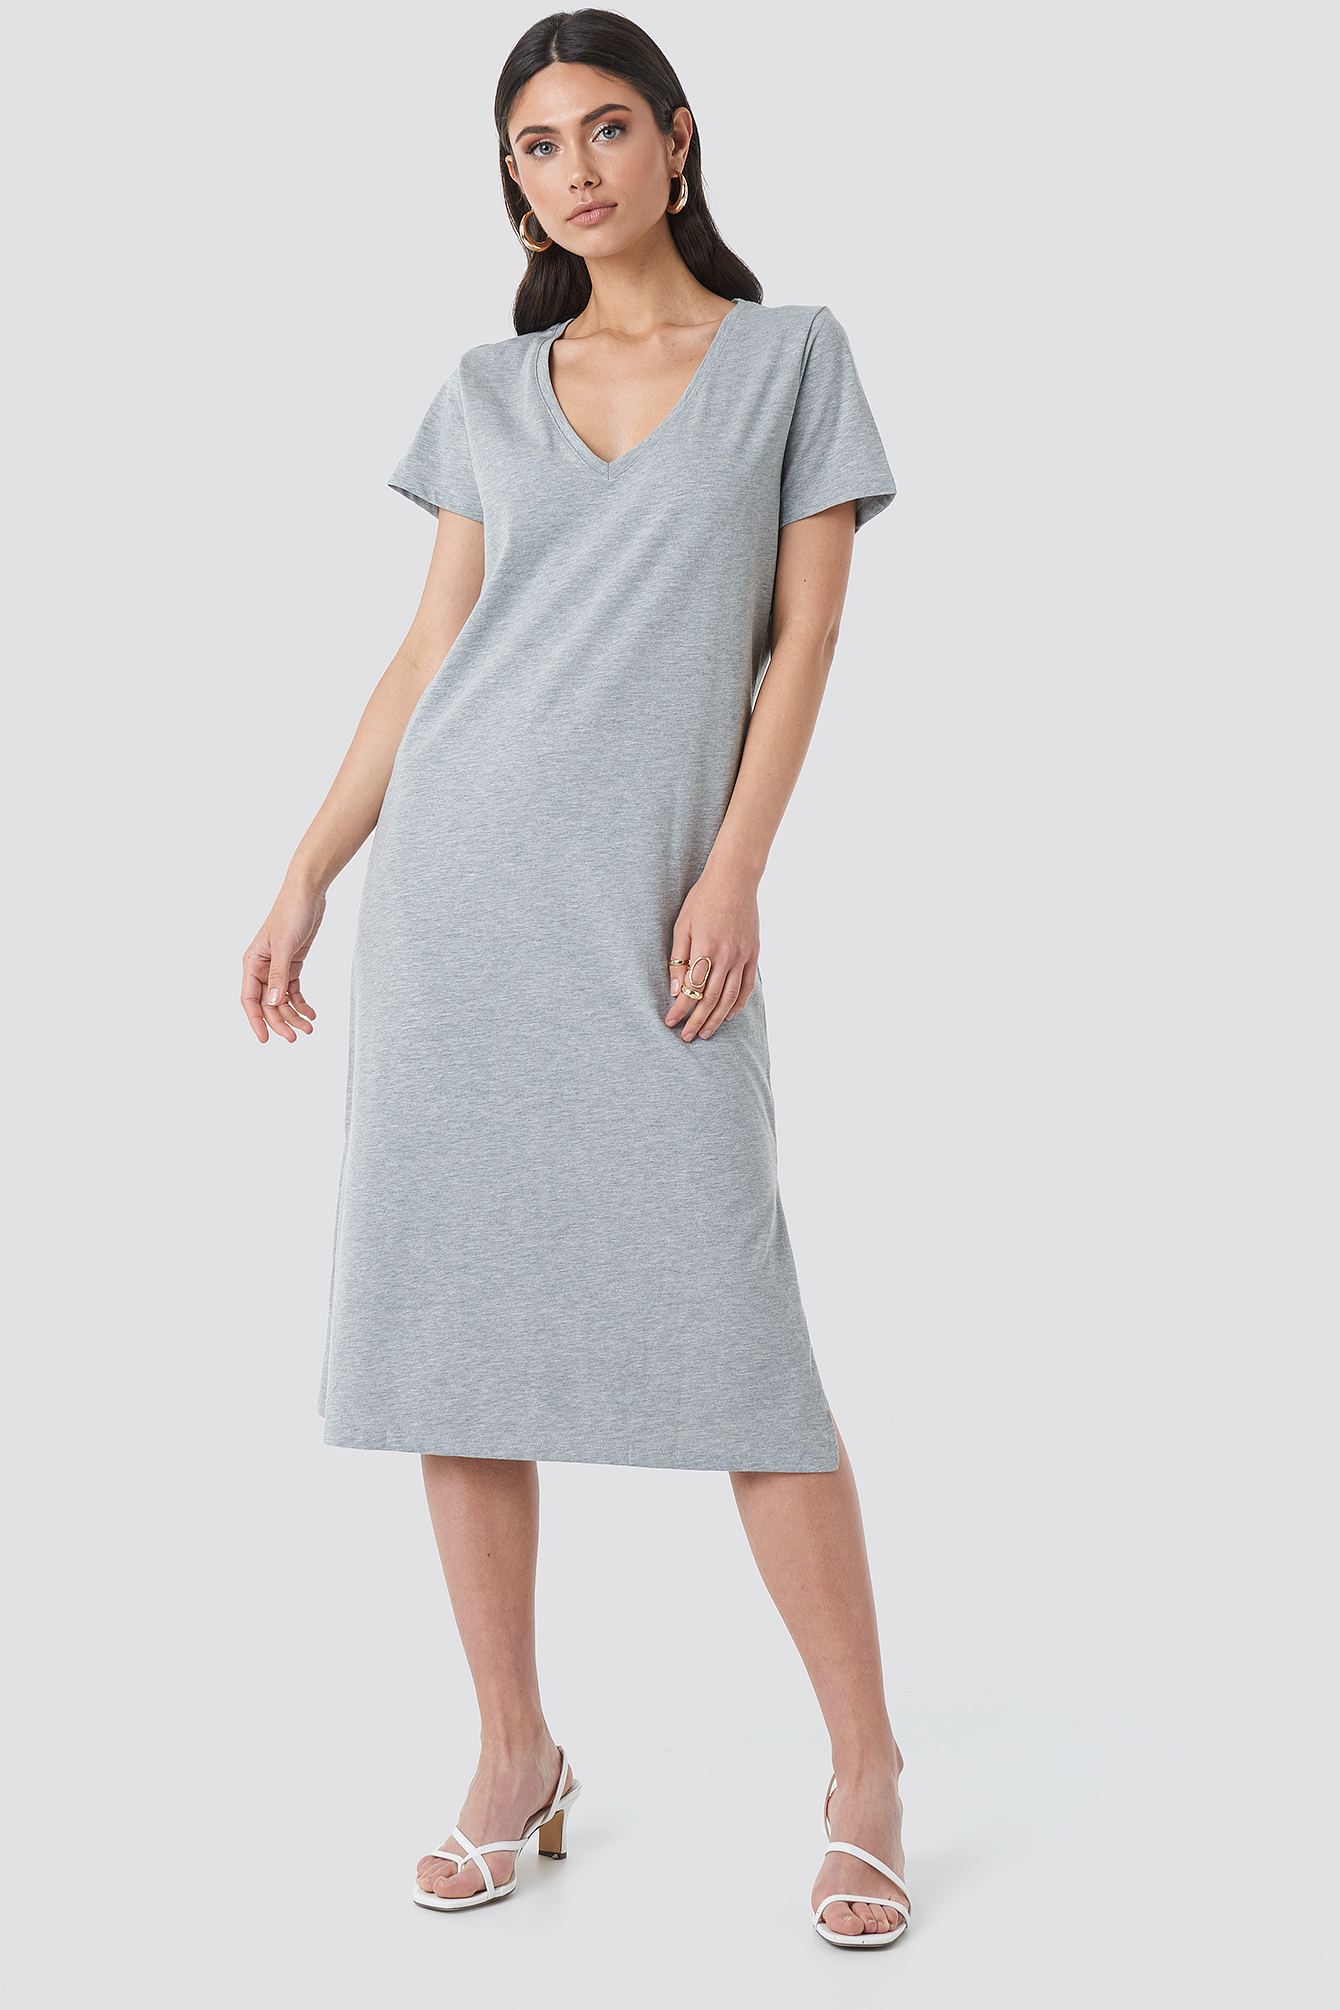 Grey Melange V-neck Jersey Dress